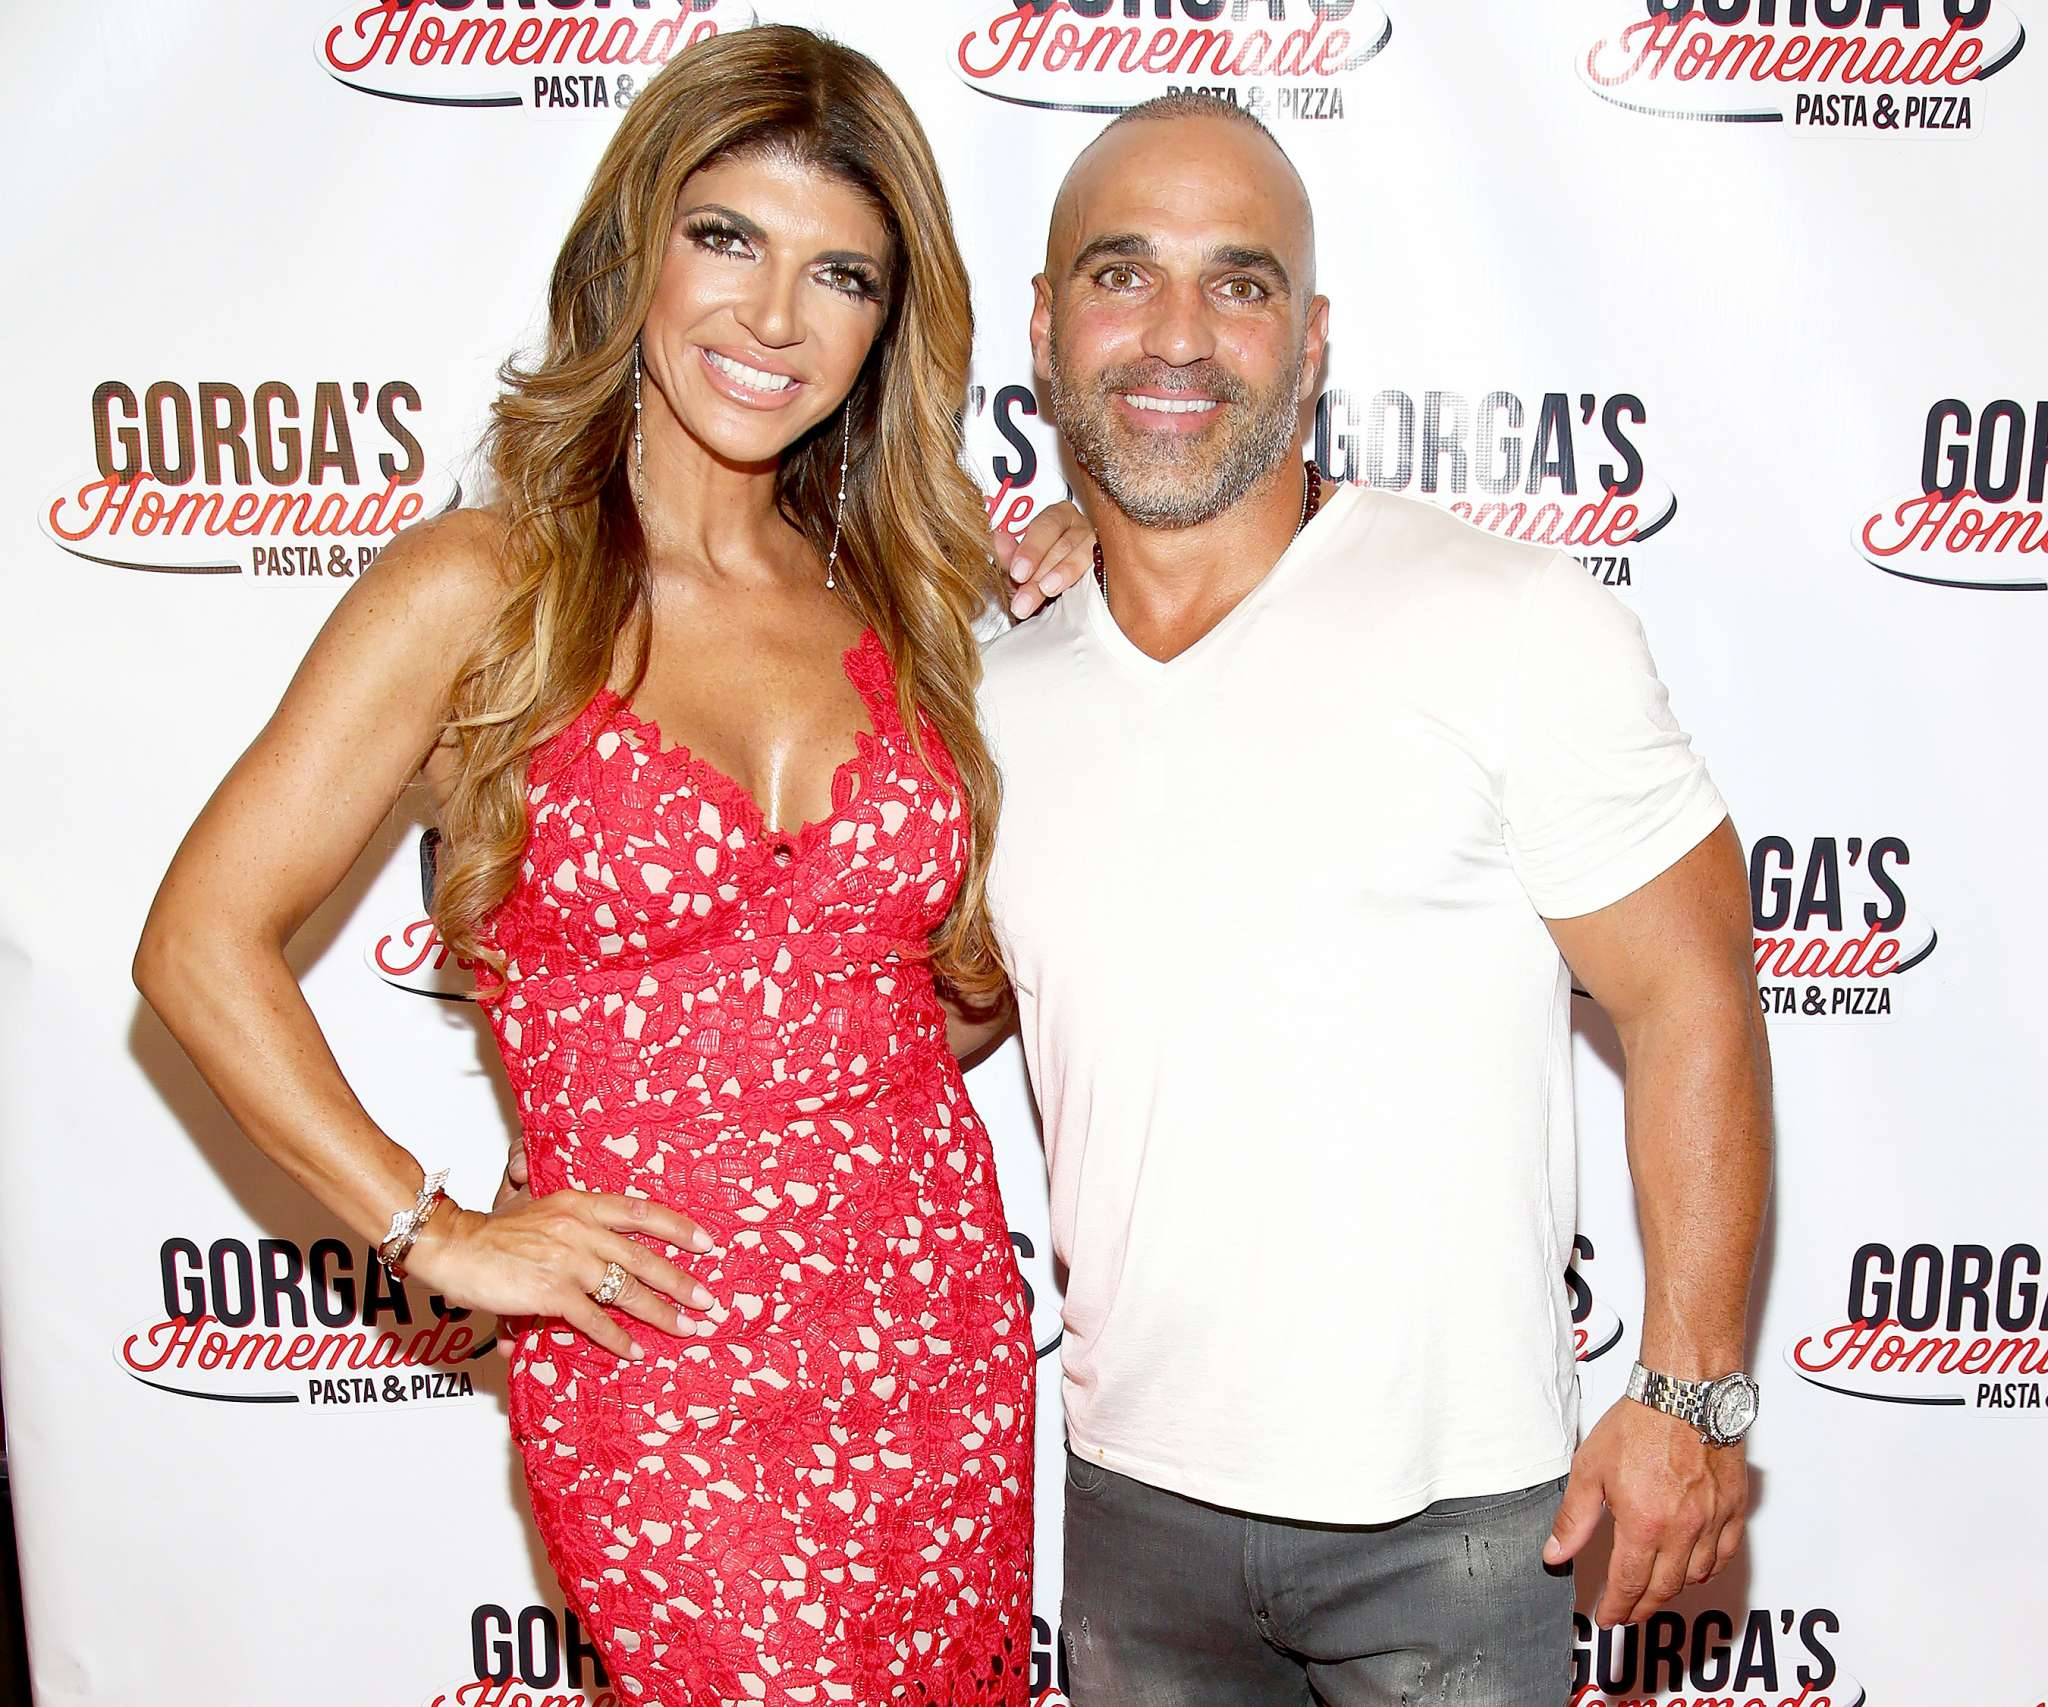 joe-gorga-says-he-loaned-15k-from-his-sister-teresa-to-help-launch-his-career